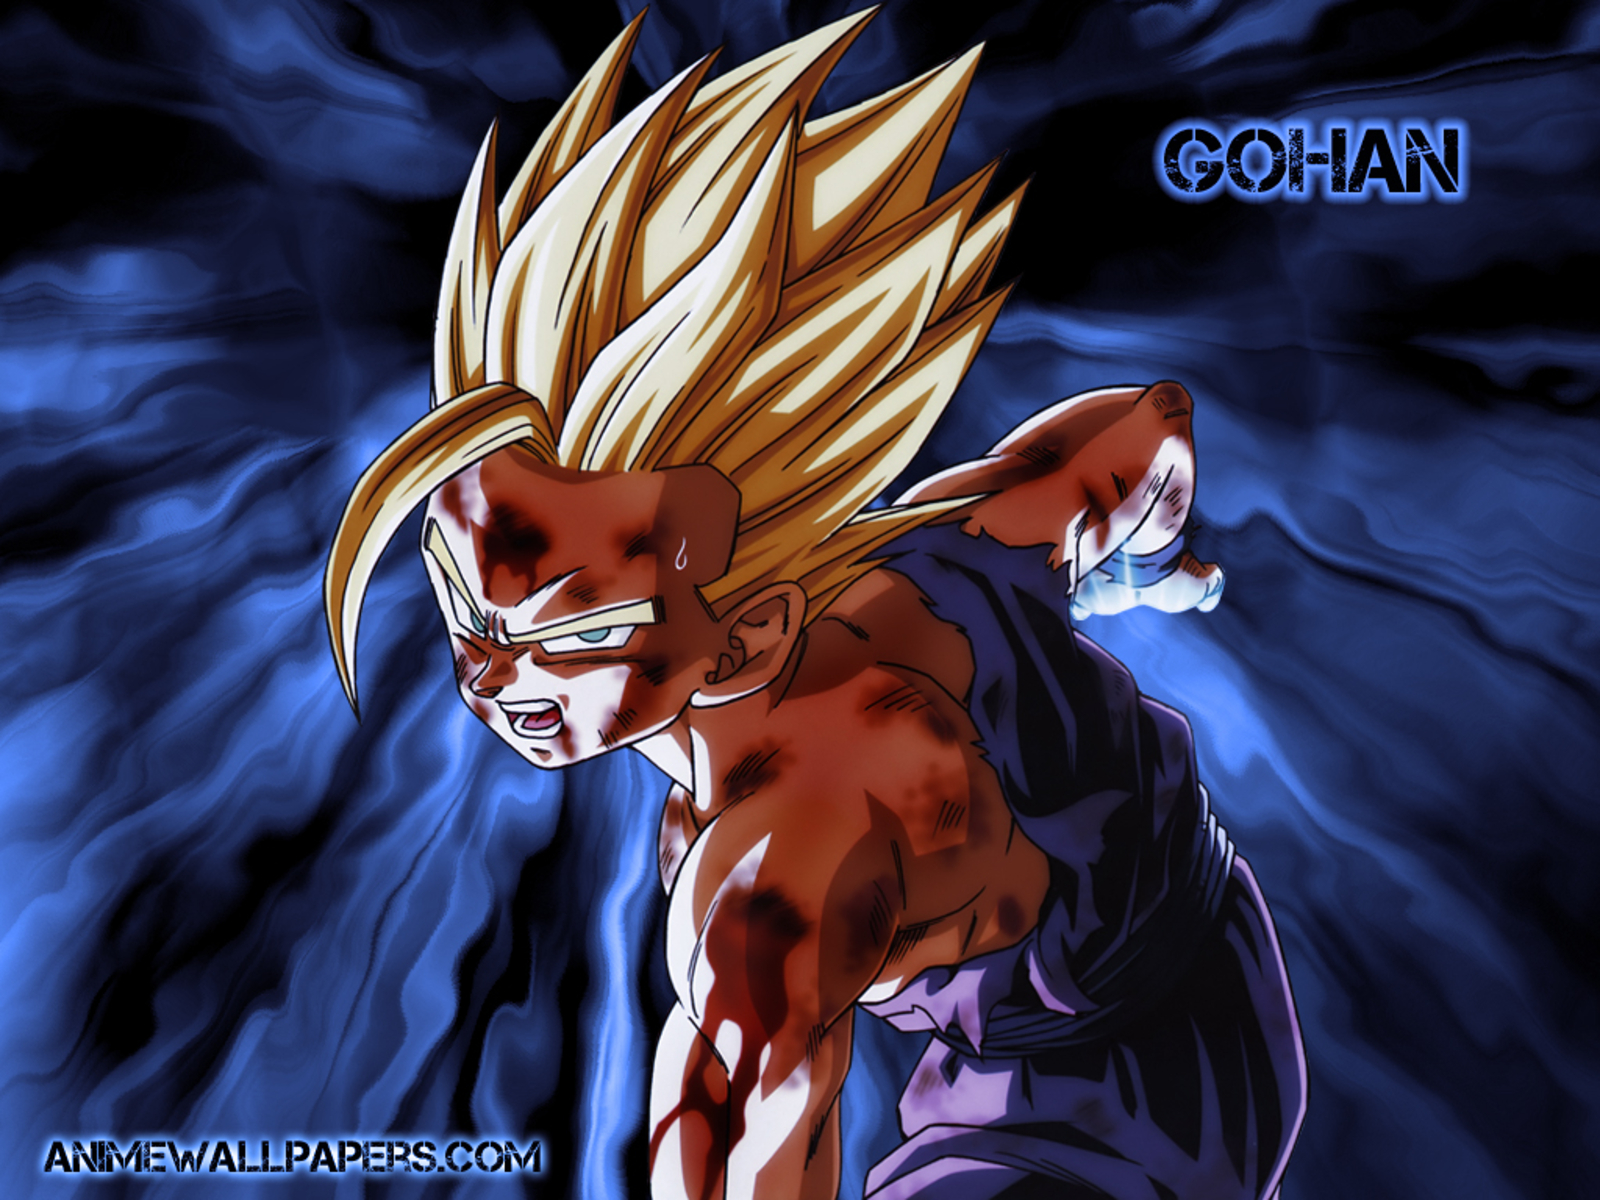 Gohan Super Saiyan 2 Gohan Kamehameha 1245937 Hd Wallpaper Backgrounds Download